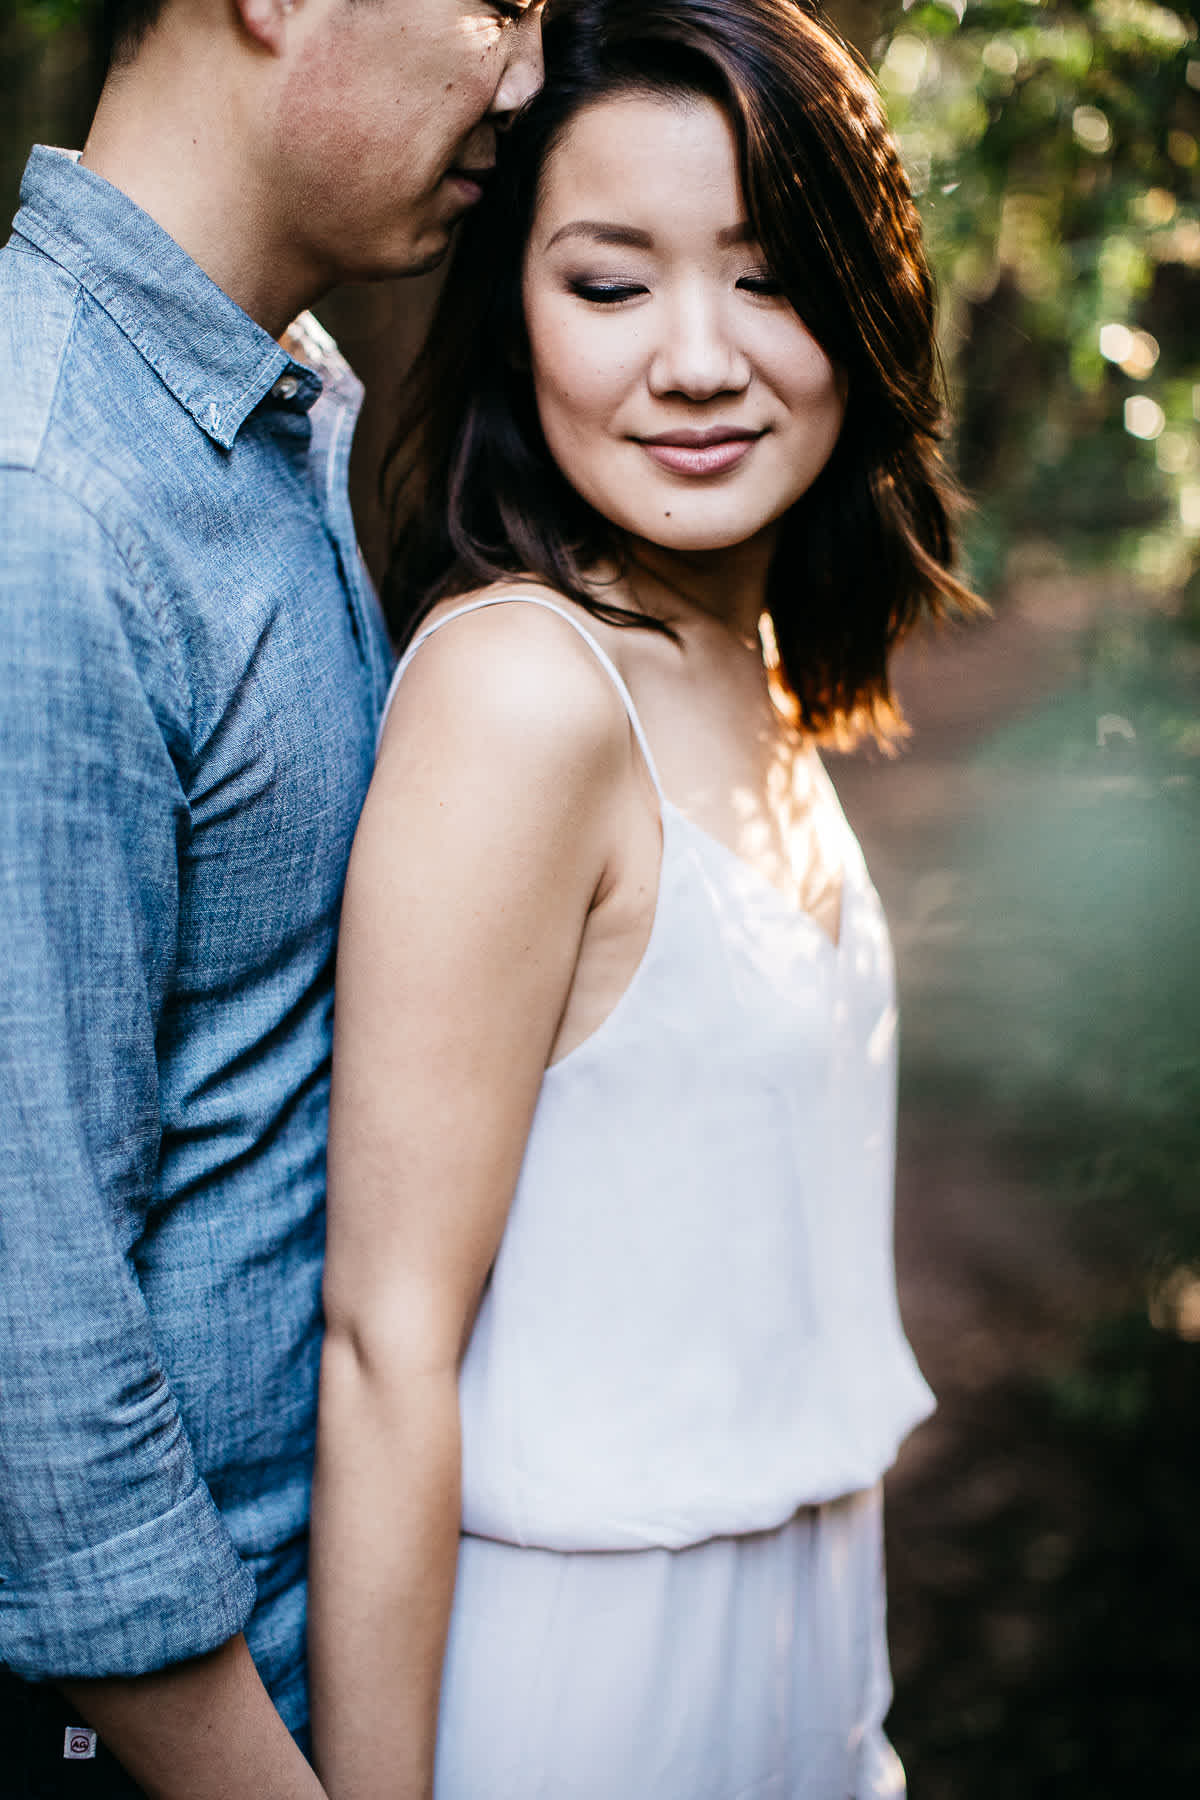 oakland-california-lifestyle-engagment-session-redwood-hills-30